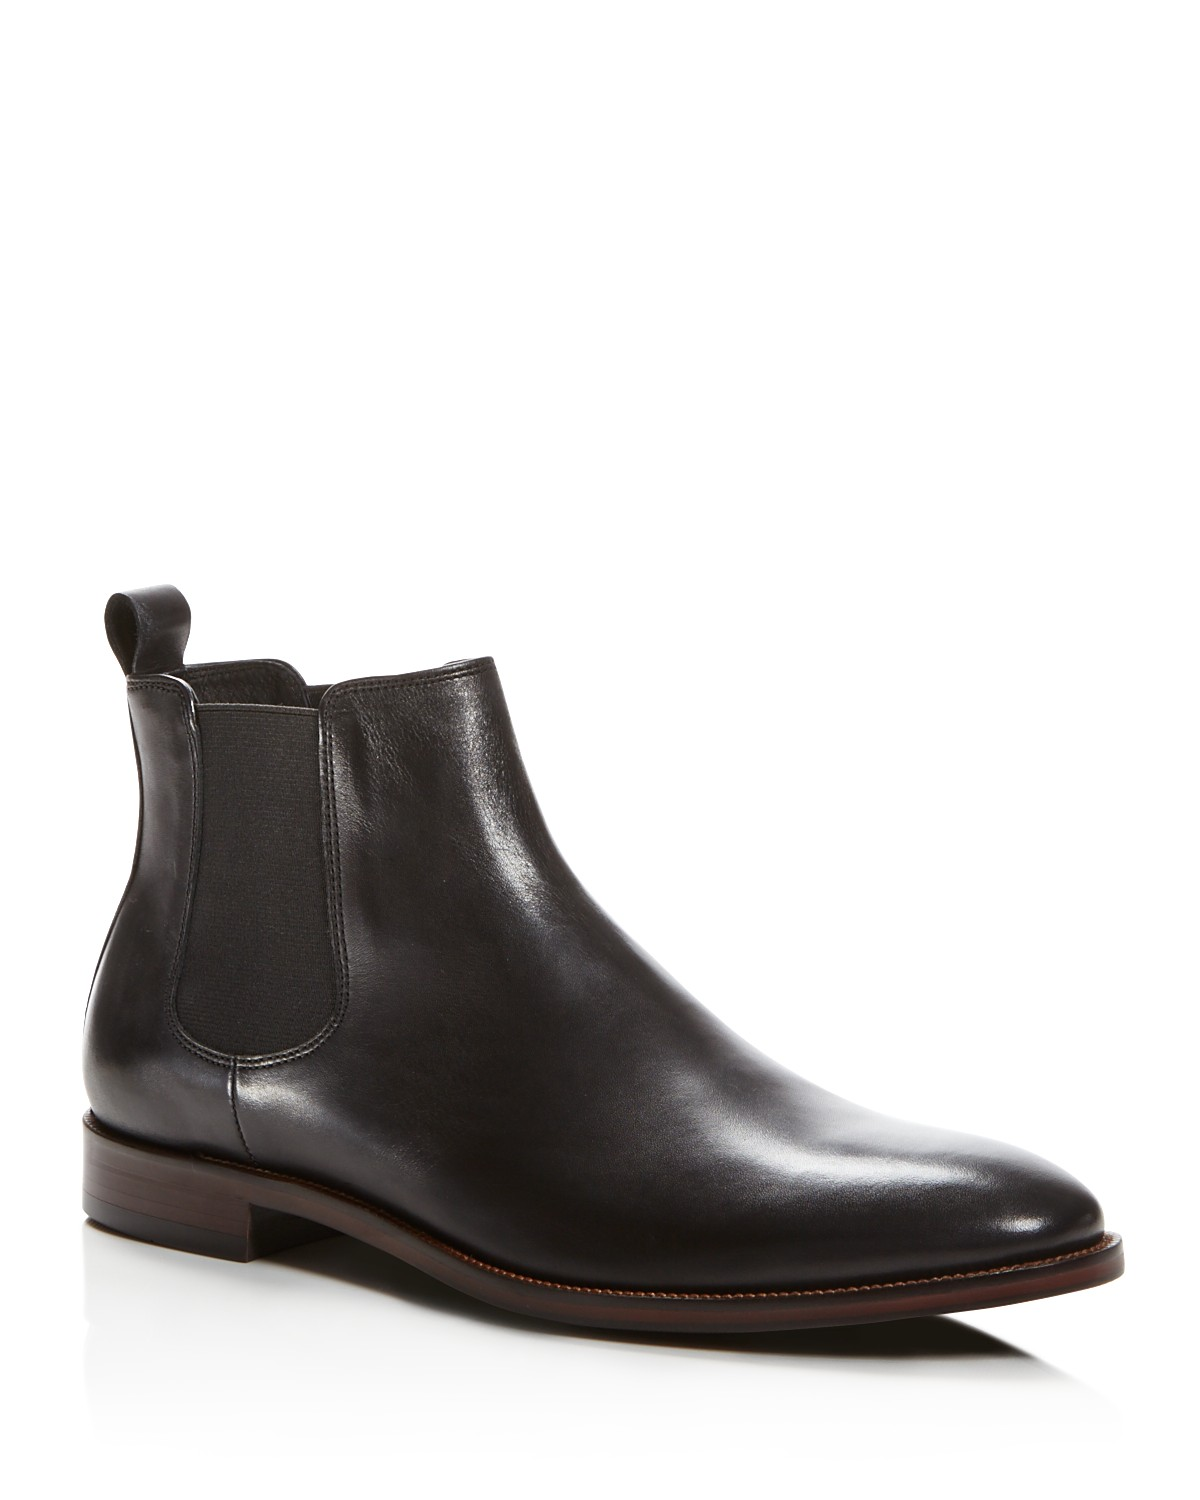 Bloomingdale's Leather Chukka Boots - 100% Exclusive 0GPTyADF